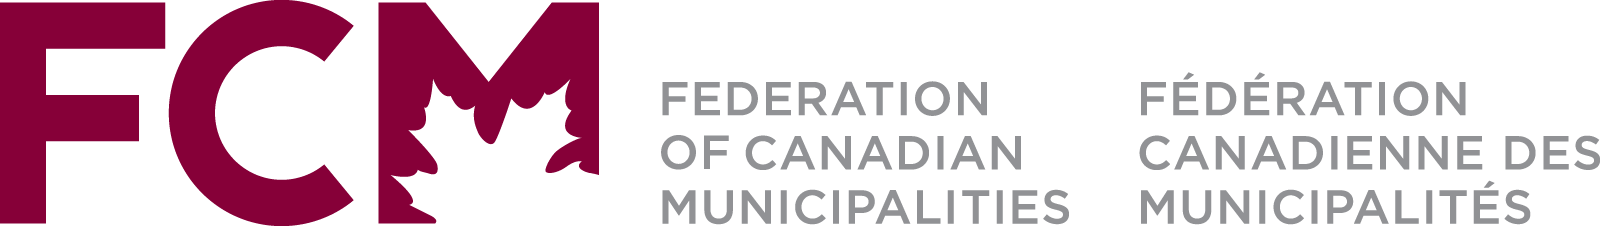 Federation of Canadian Municipalities